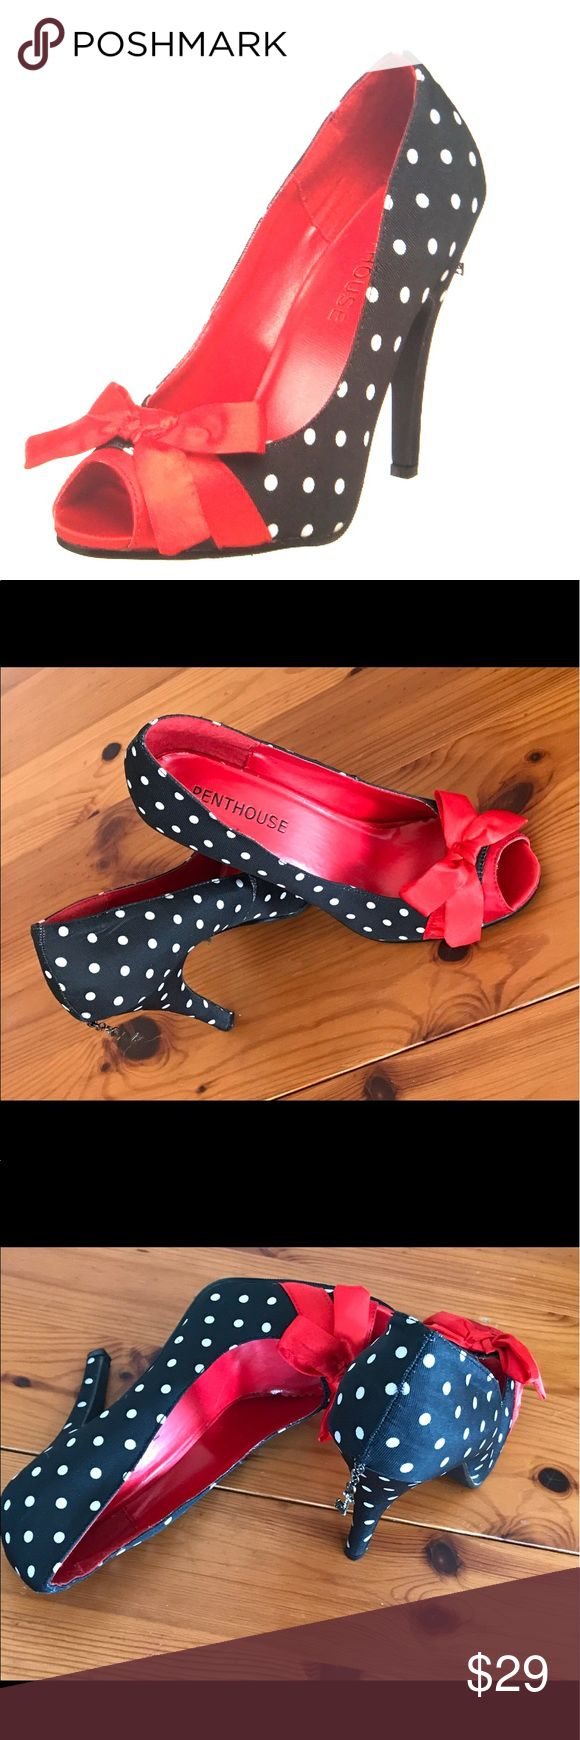 "PENTHOUSE PAIGE SATIN POLKA DOT PUMP ADD A TOUCH OF FEMININITY TO COMPLETE YOUR VALENTINE WARDROBE!  PLATFORM 4.5"" heel peep toe stiletto dress pump with polkadot accent and a satin bow at the top. Lightly padded foot bed scooped vamp.  Only worn once inside. Love this sexy peep toe pump but bought without trying on in store and a bit snug for me. PENTHOUSE Shoes Heels"